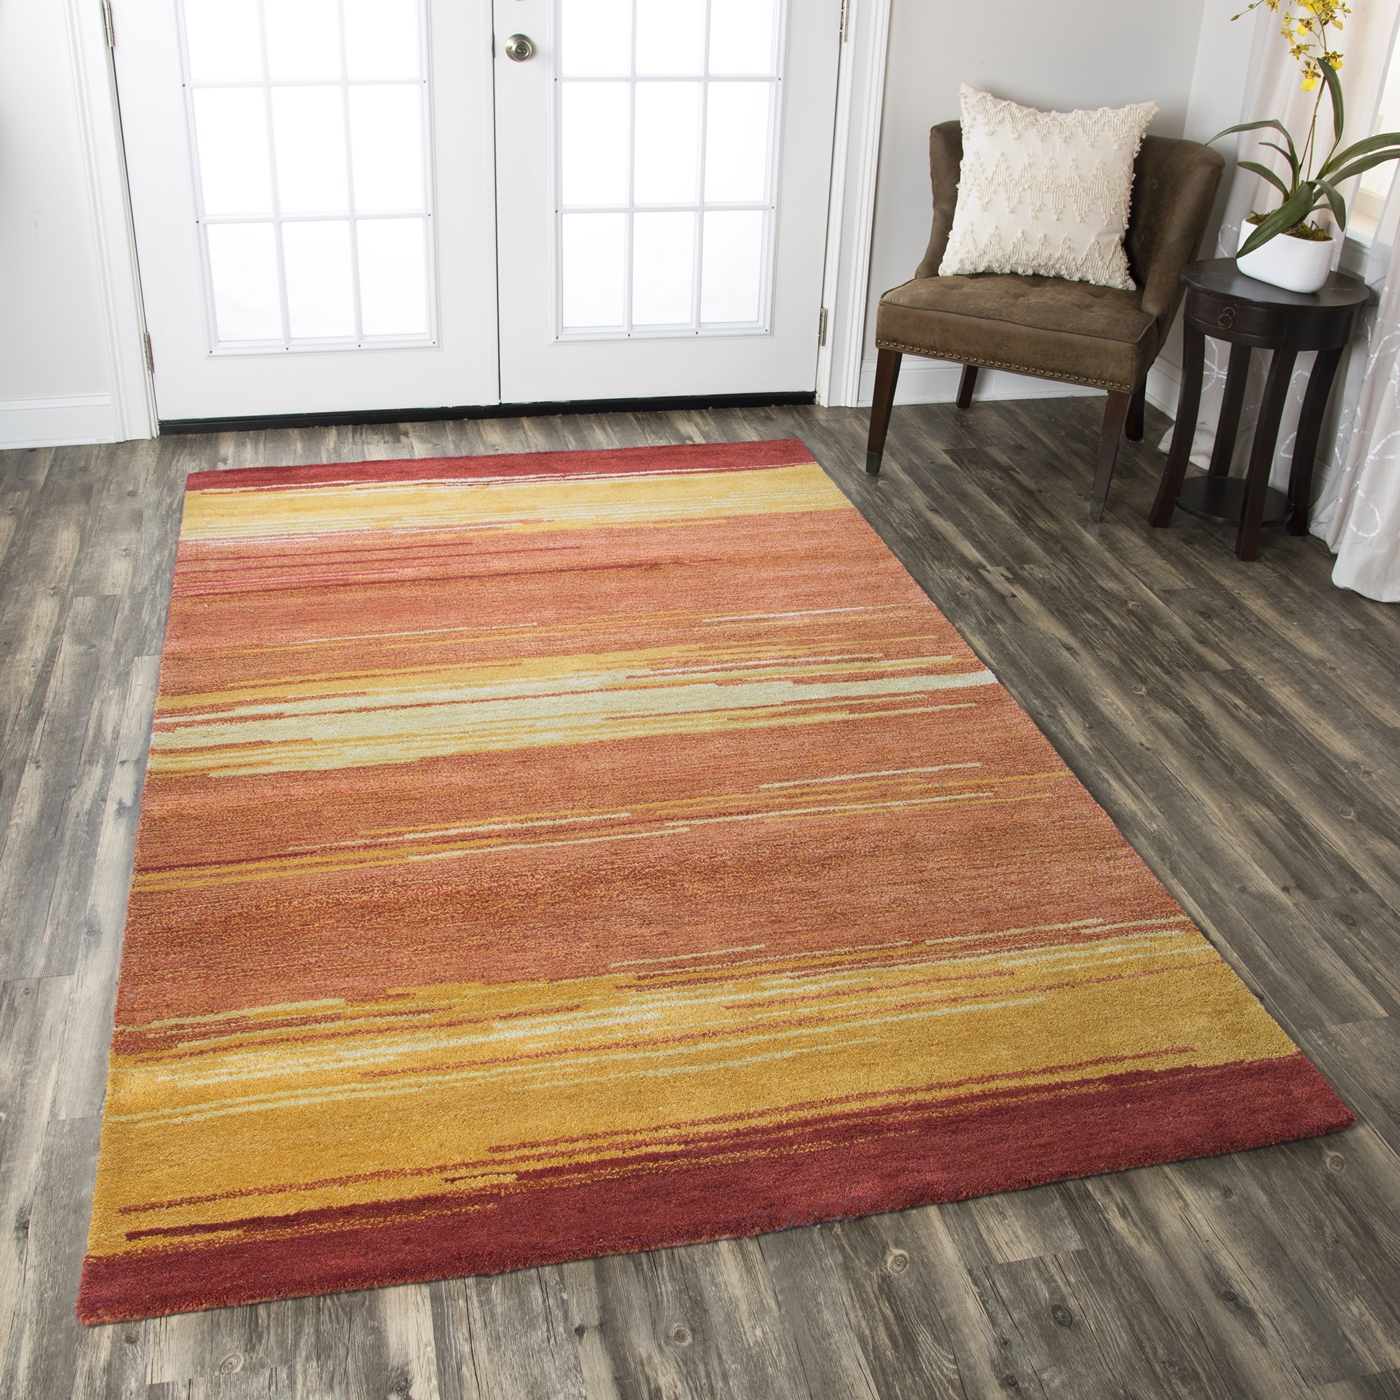 Area Rug 8x10 Orange: Mojave Gradient Abstract Lines Wool Area Rug In Gold